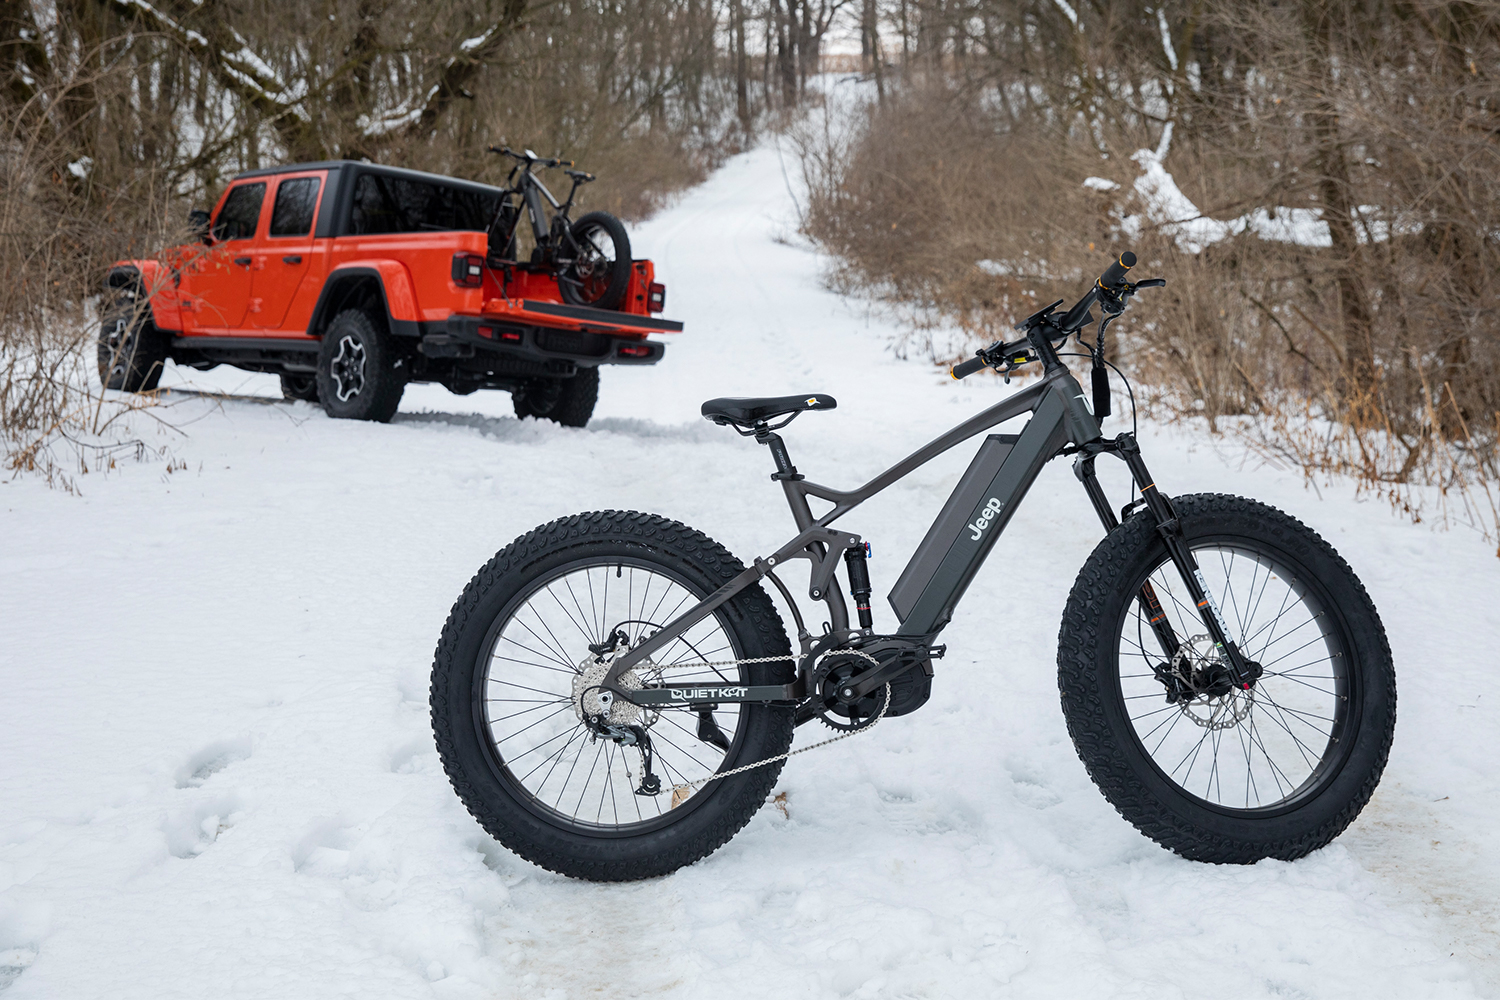 A Jeep e-bike sitting in the snow with an orange Gladiator pickup truck in the background